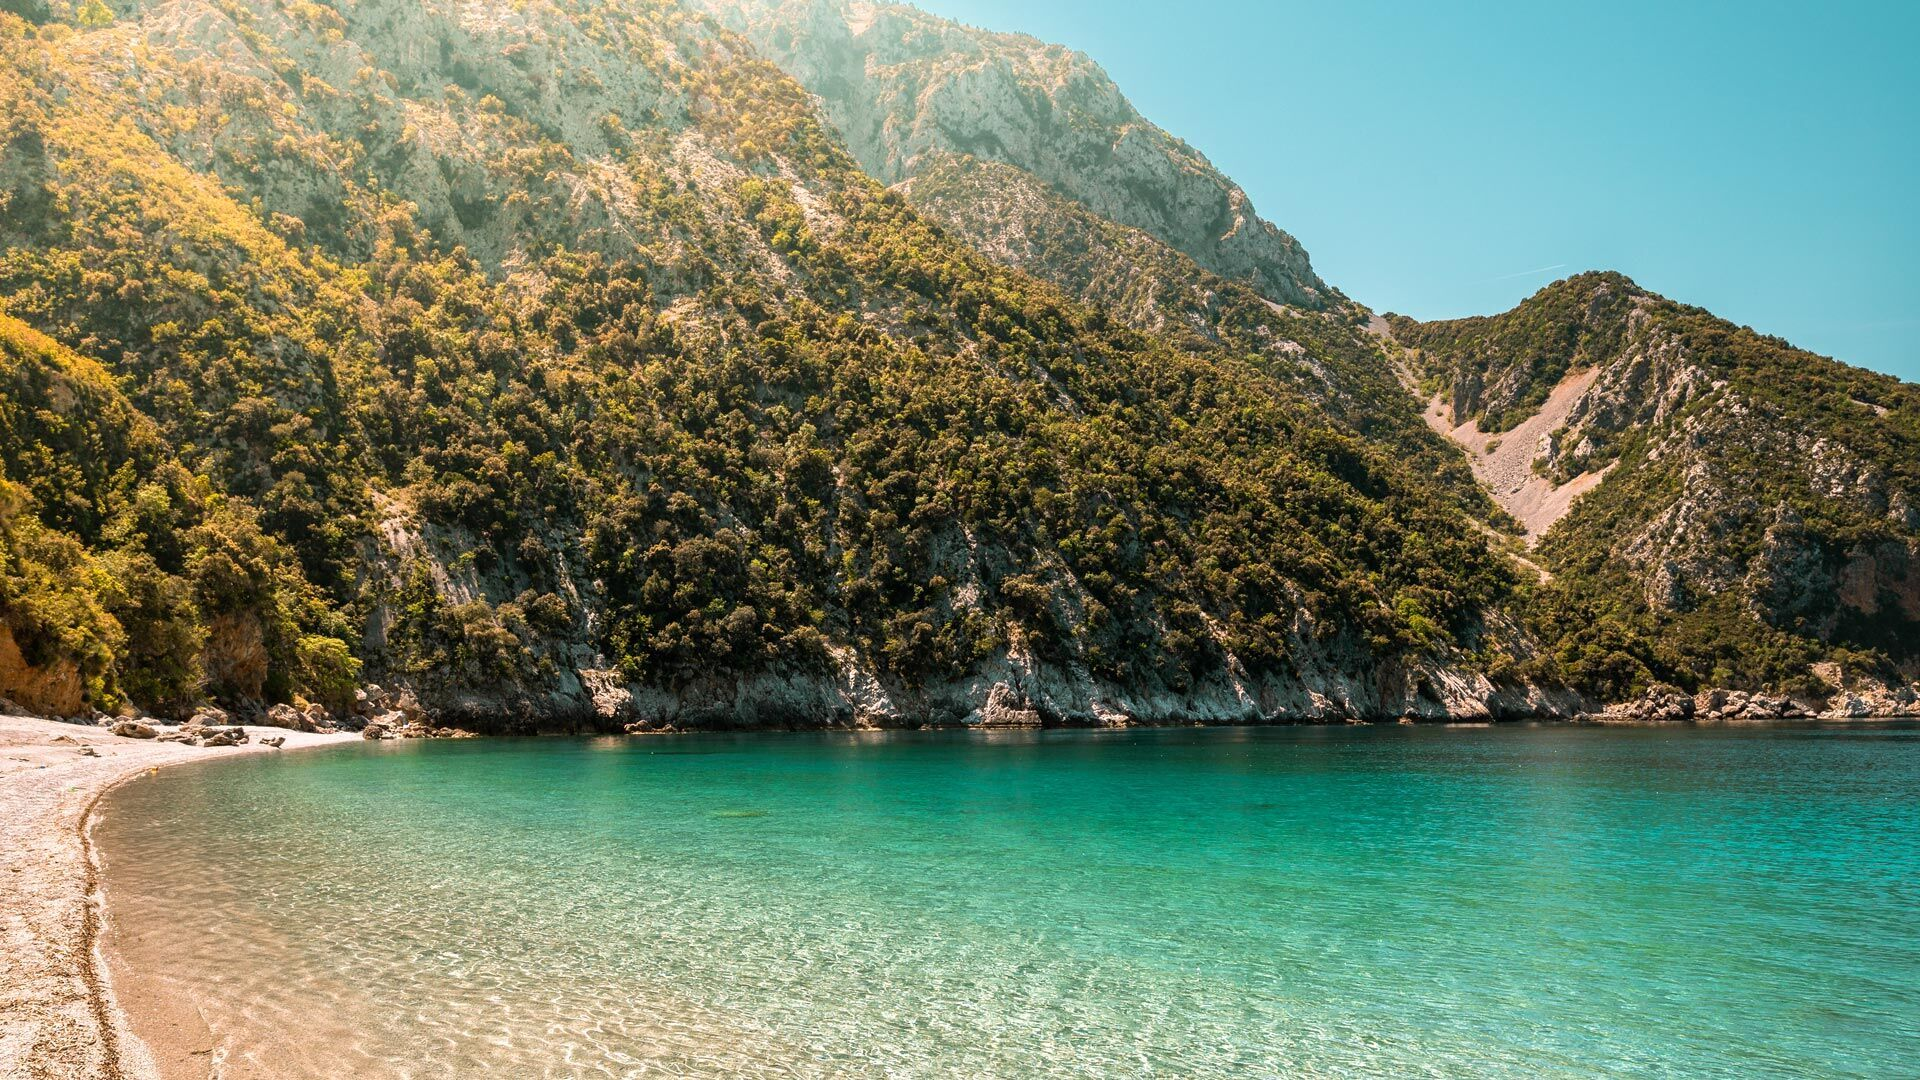 Thapsa beach, located nothern of Kymi on the side of the Aegean sea